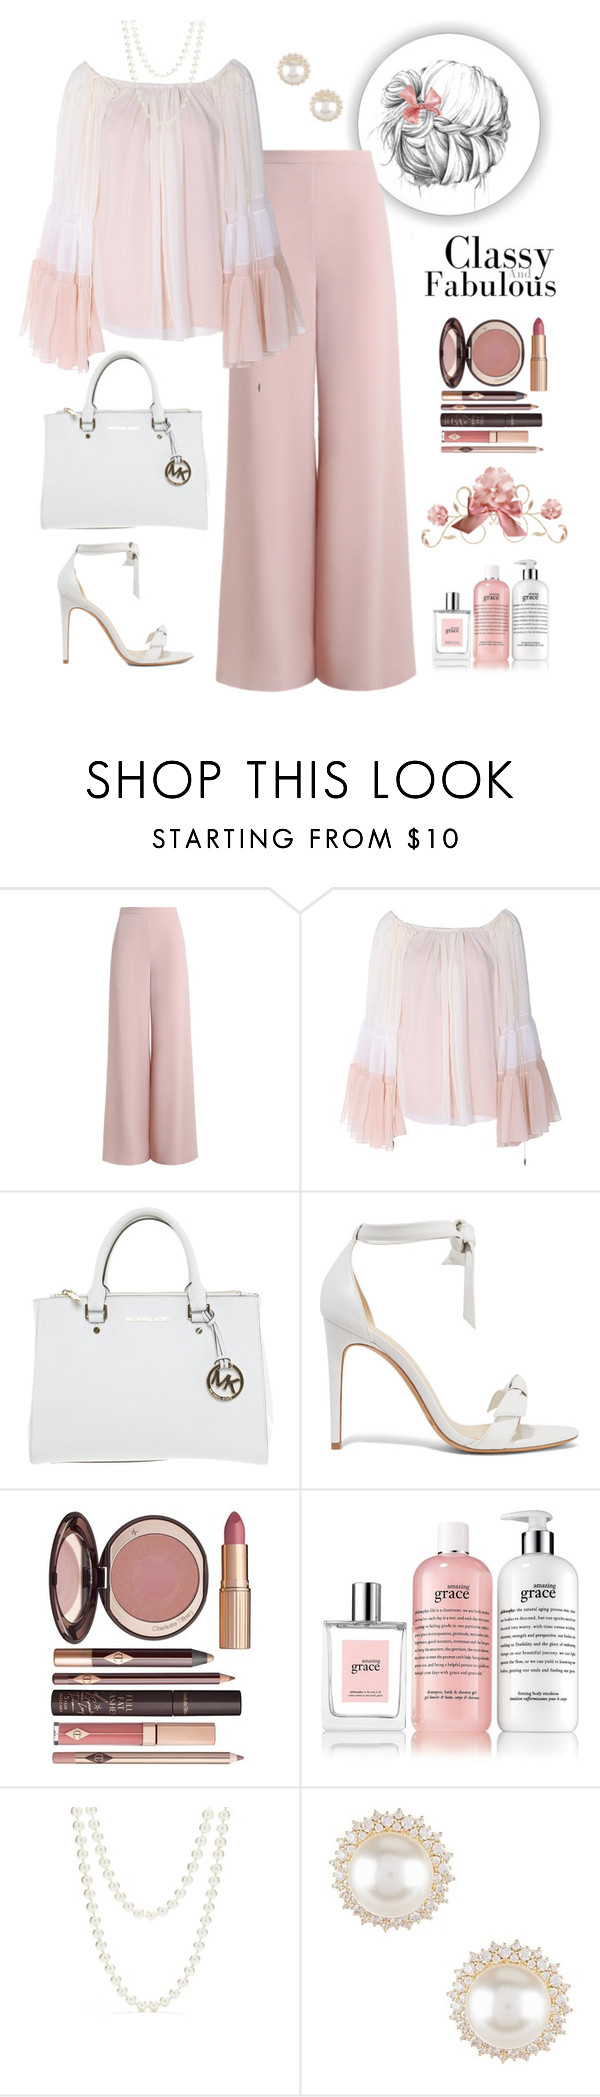 """""""Classy and Fabulous"""" by puppylove7 ❤ liked on Polyvore featuring Zimmermann, Chloé, Michael Kors, Alexandre Birman, Charlotte Tilbury, philosophy, Red Camel and Nadri"""